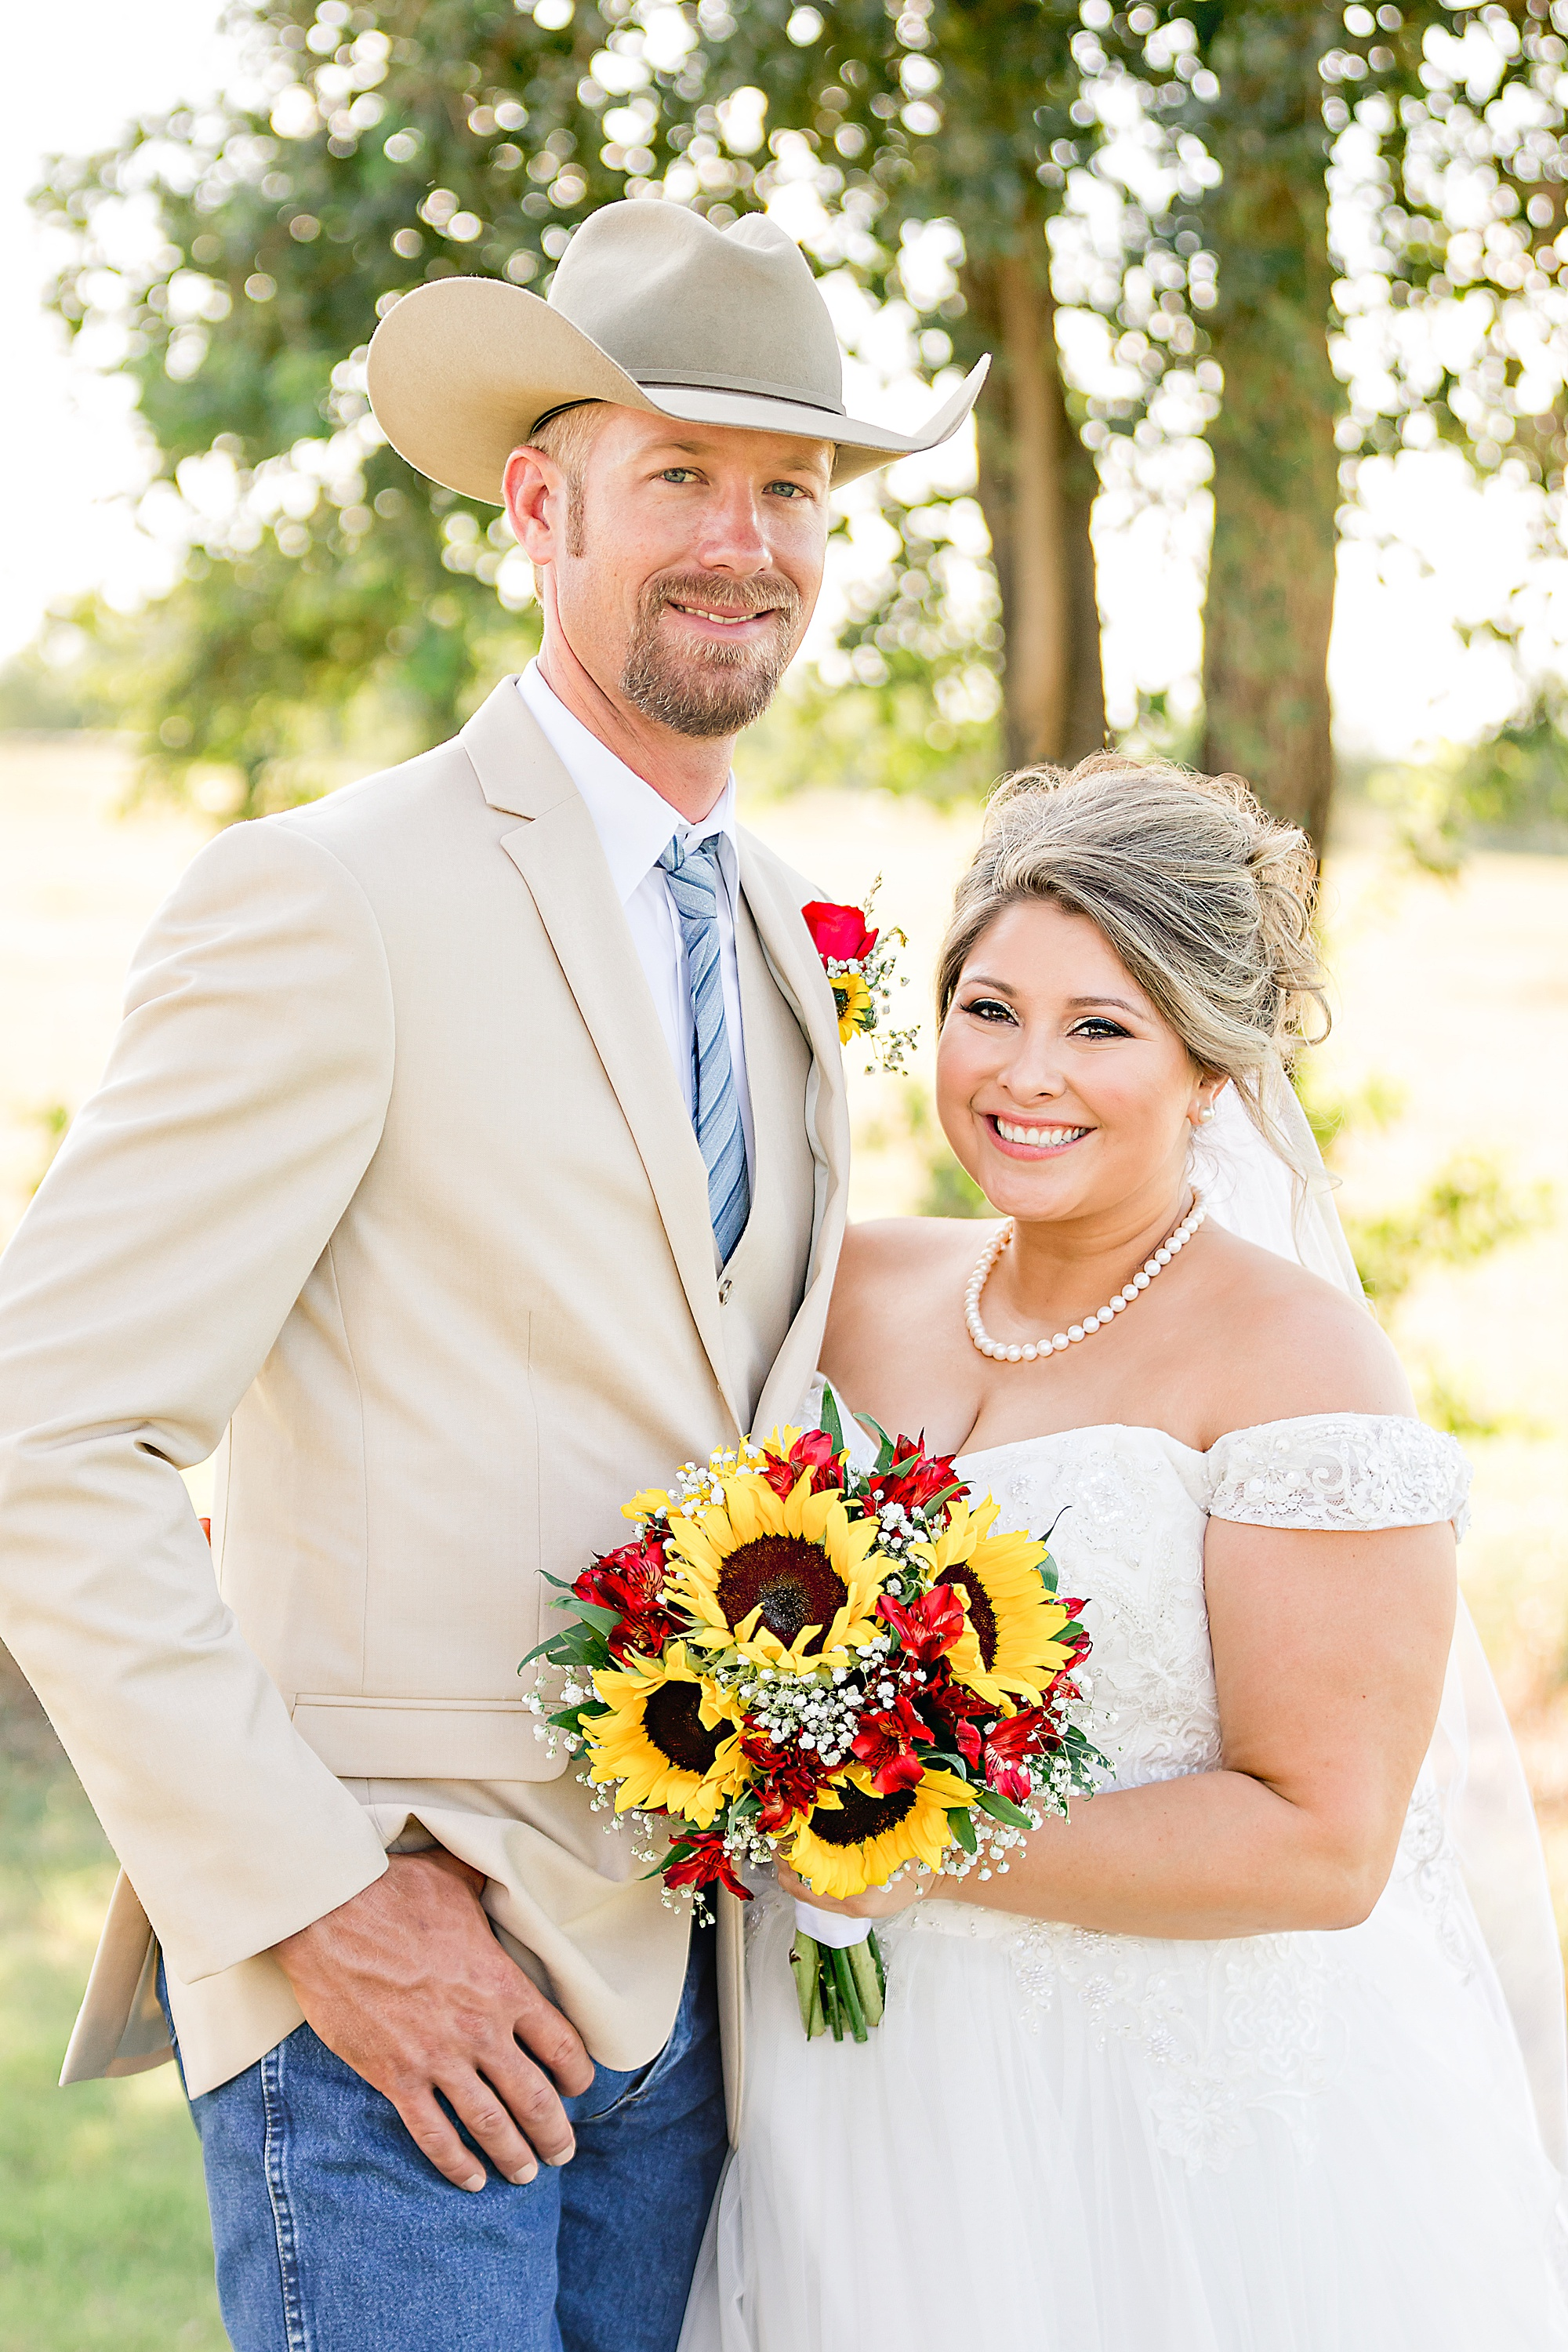 Wedding-Photographer-Rustic-Sunflower-theme-Texas-Carly-Barton-Photography_0107.jpg